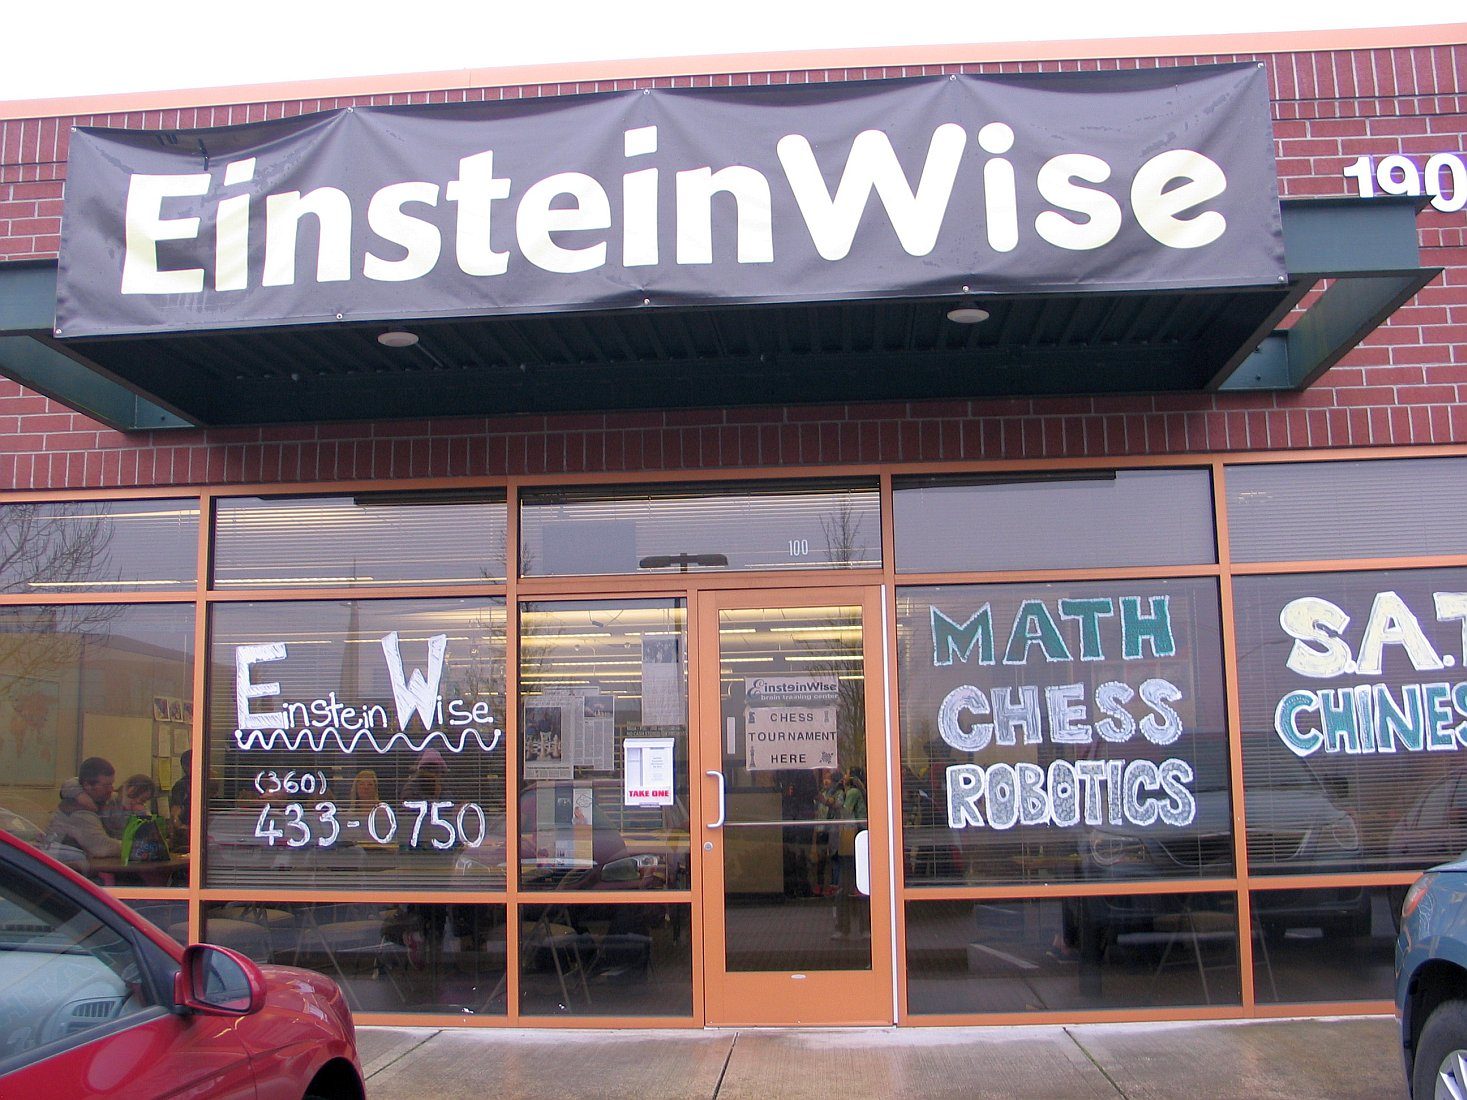 EinsteinWise building in East Vancouver Washington. Photo Credit: Russell Miller